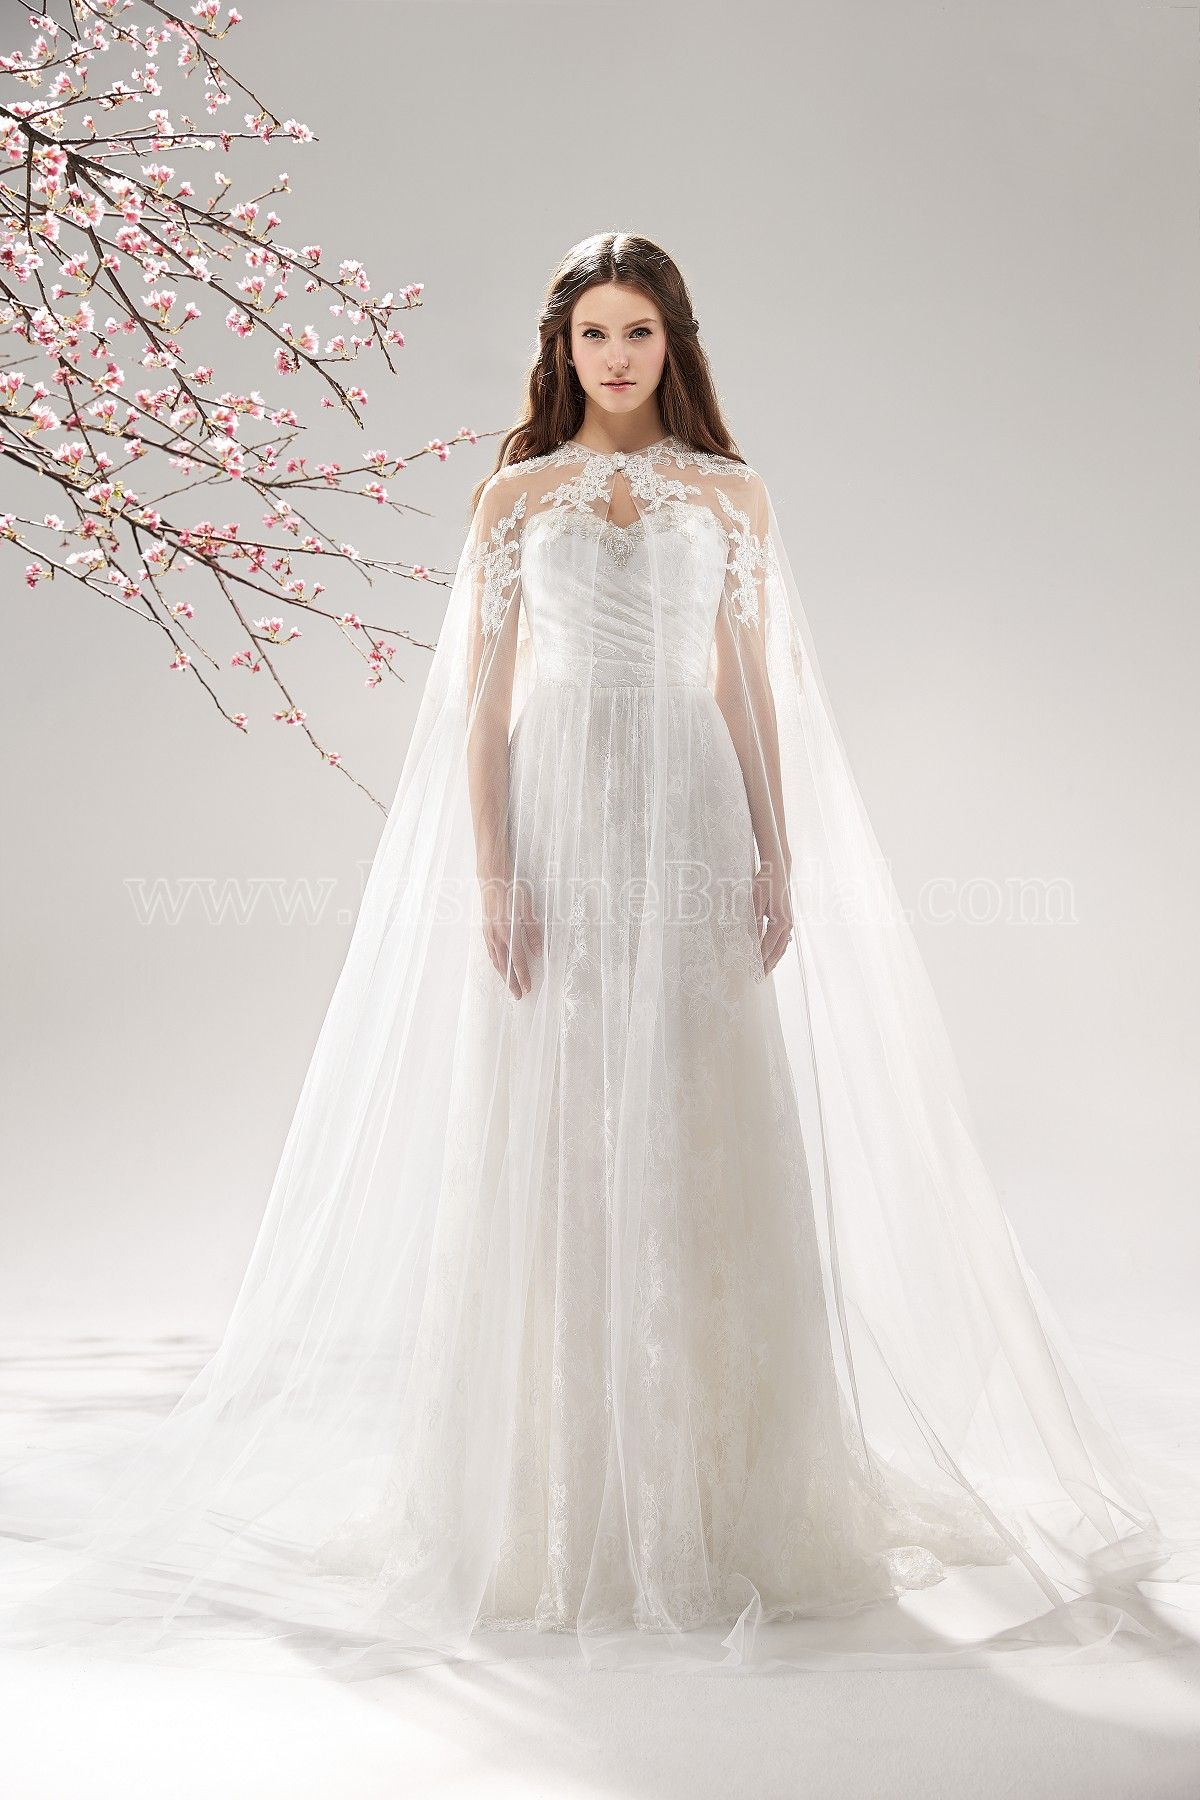 Lace dress with cape  Jasmine Bridal  Wedding  Pinterest  Jasmine bridal Beaded lace